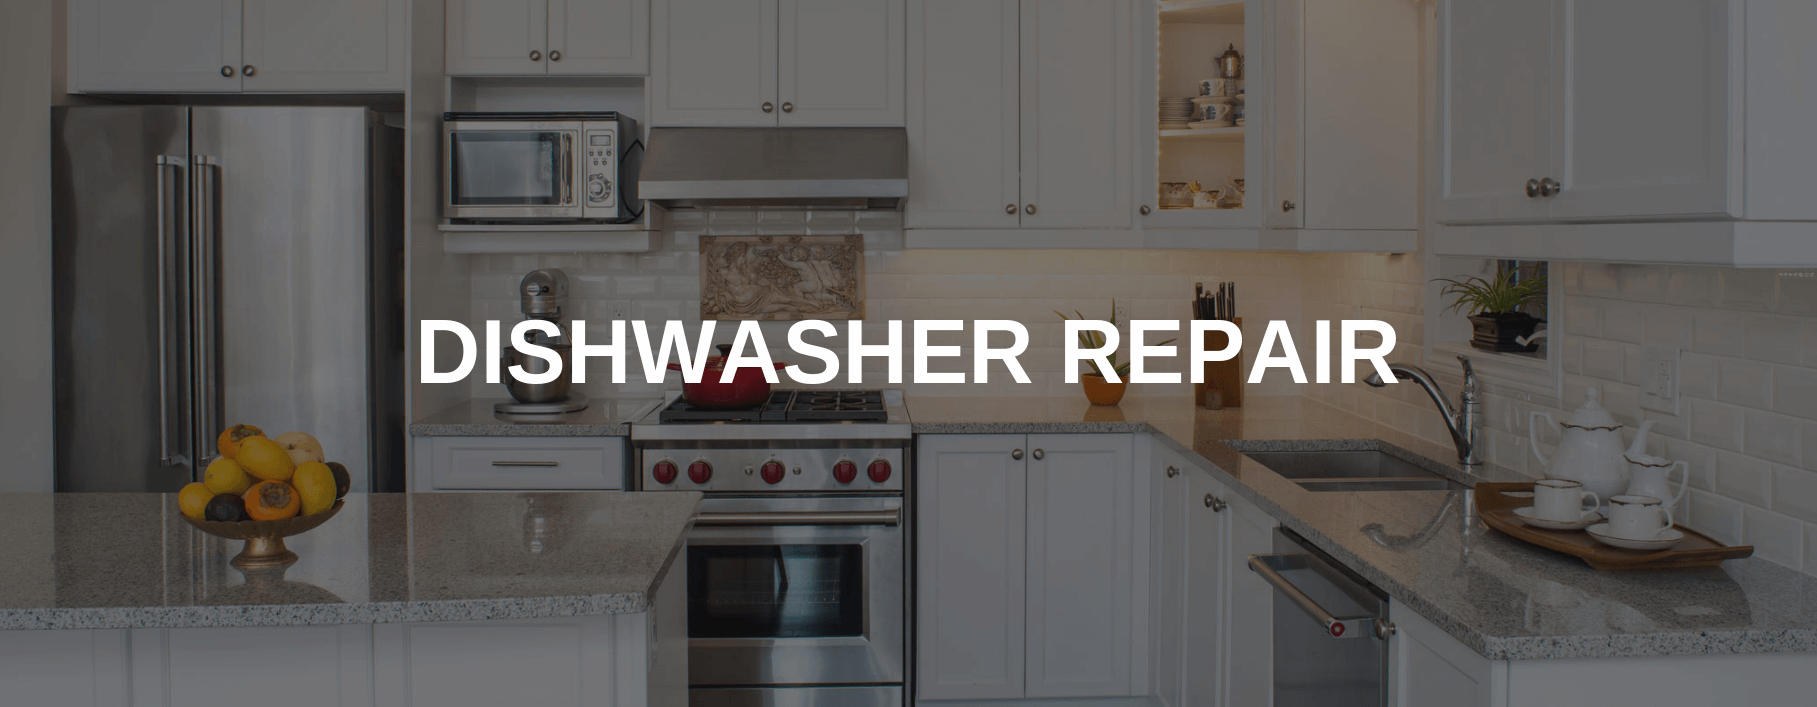 Dishwasher Repair Coral Springs, FL | 754-757-2297 | P&G